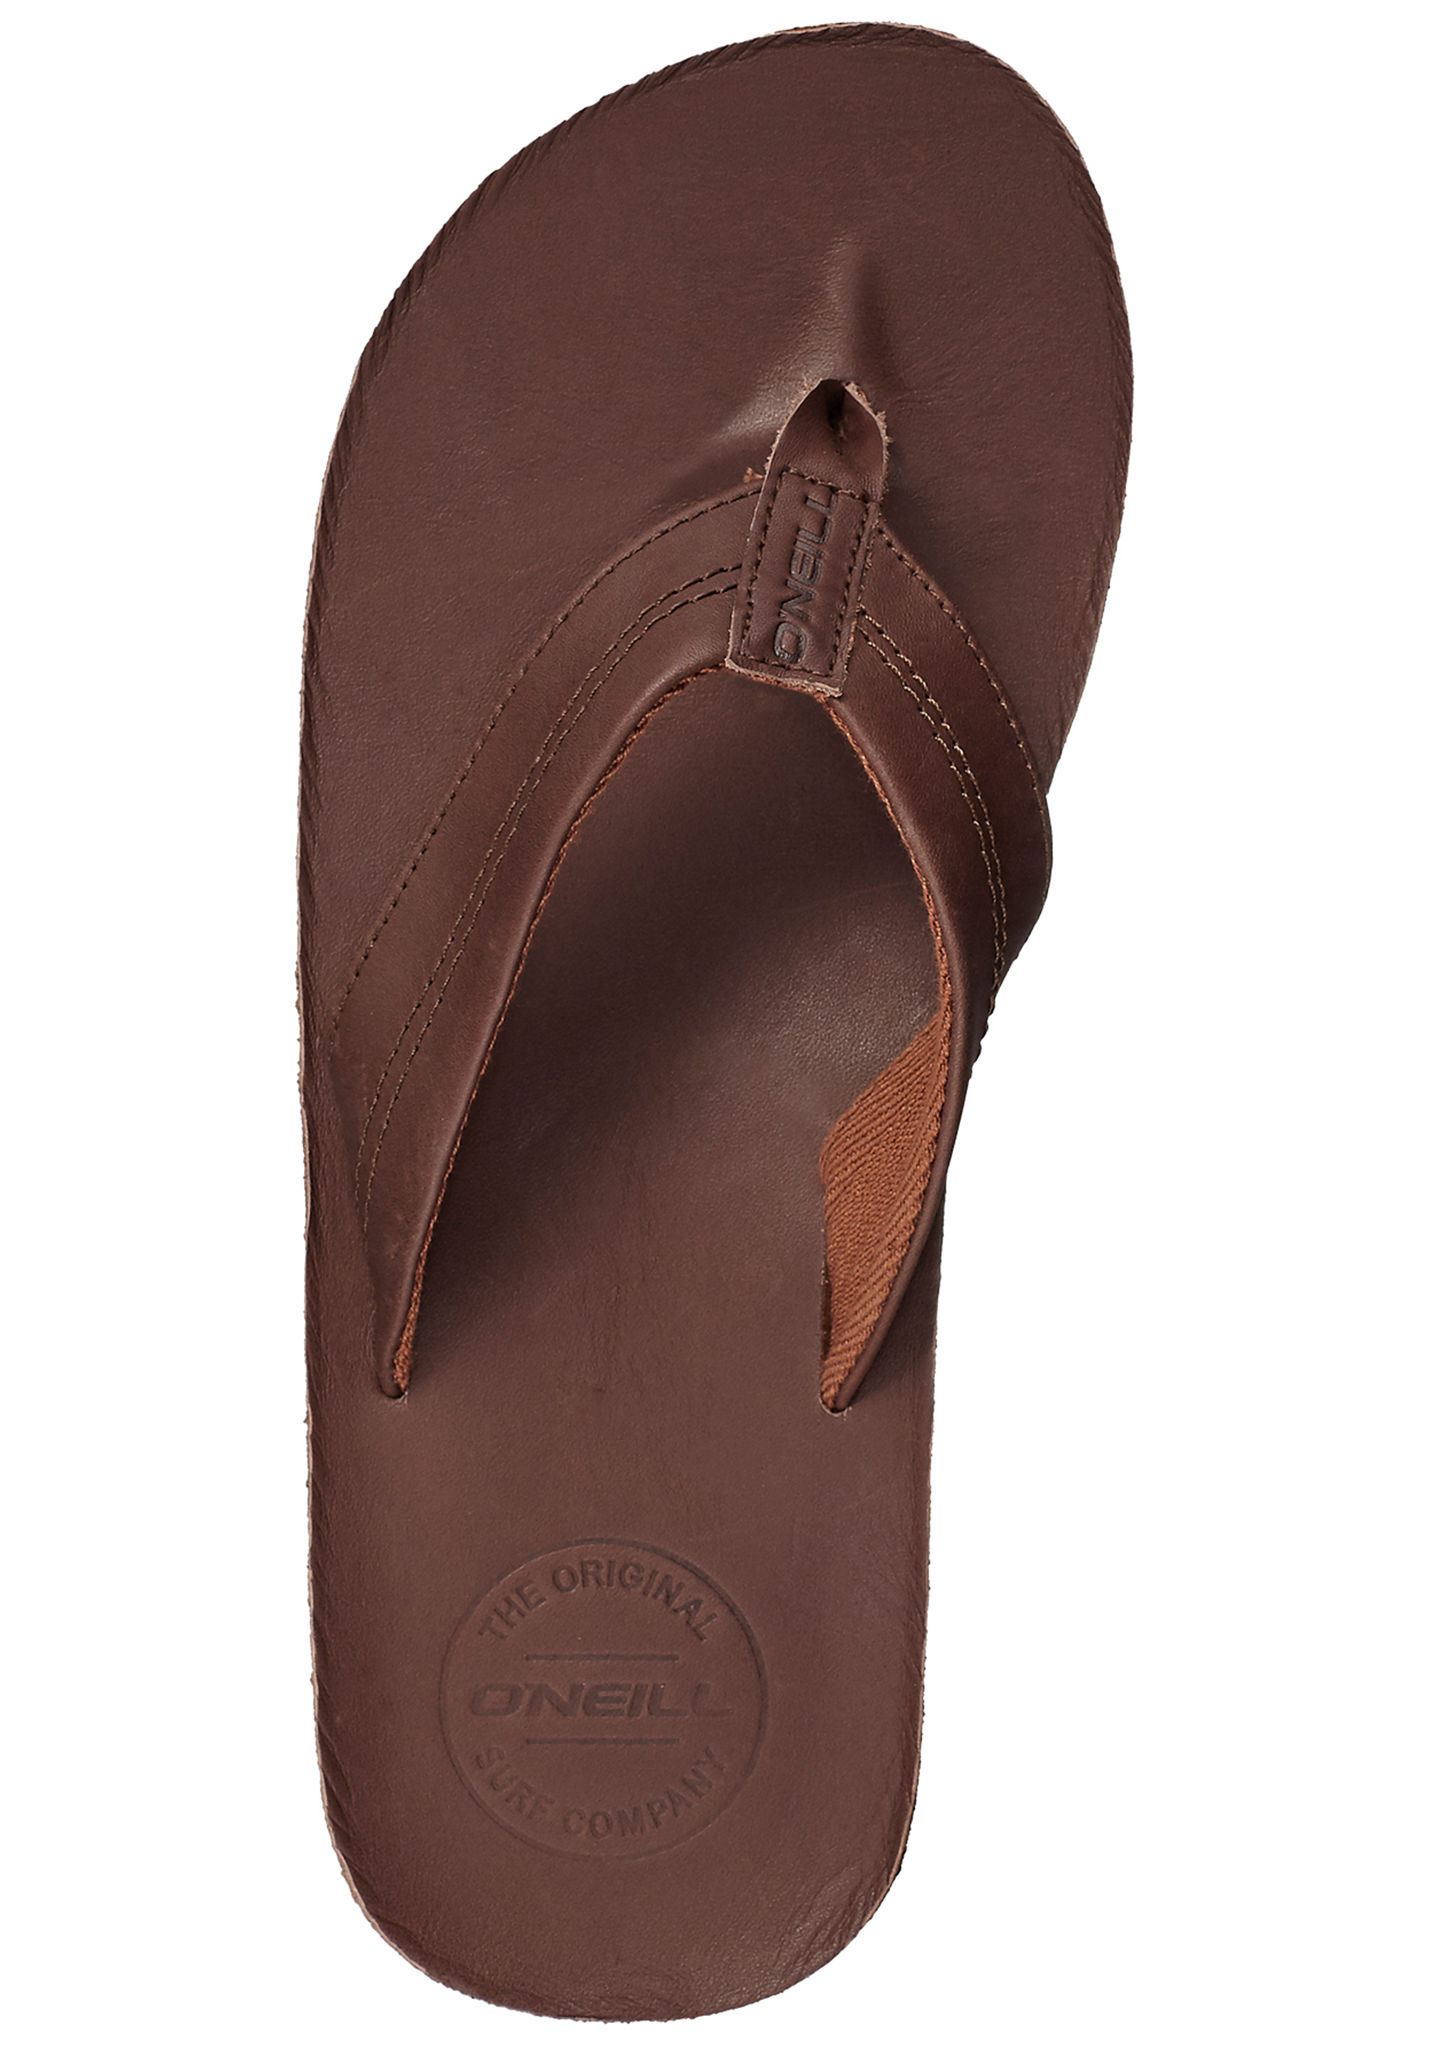 O Neill Captain Jack Sandals for Men Brown